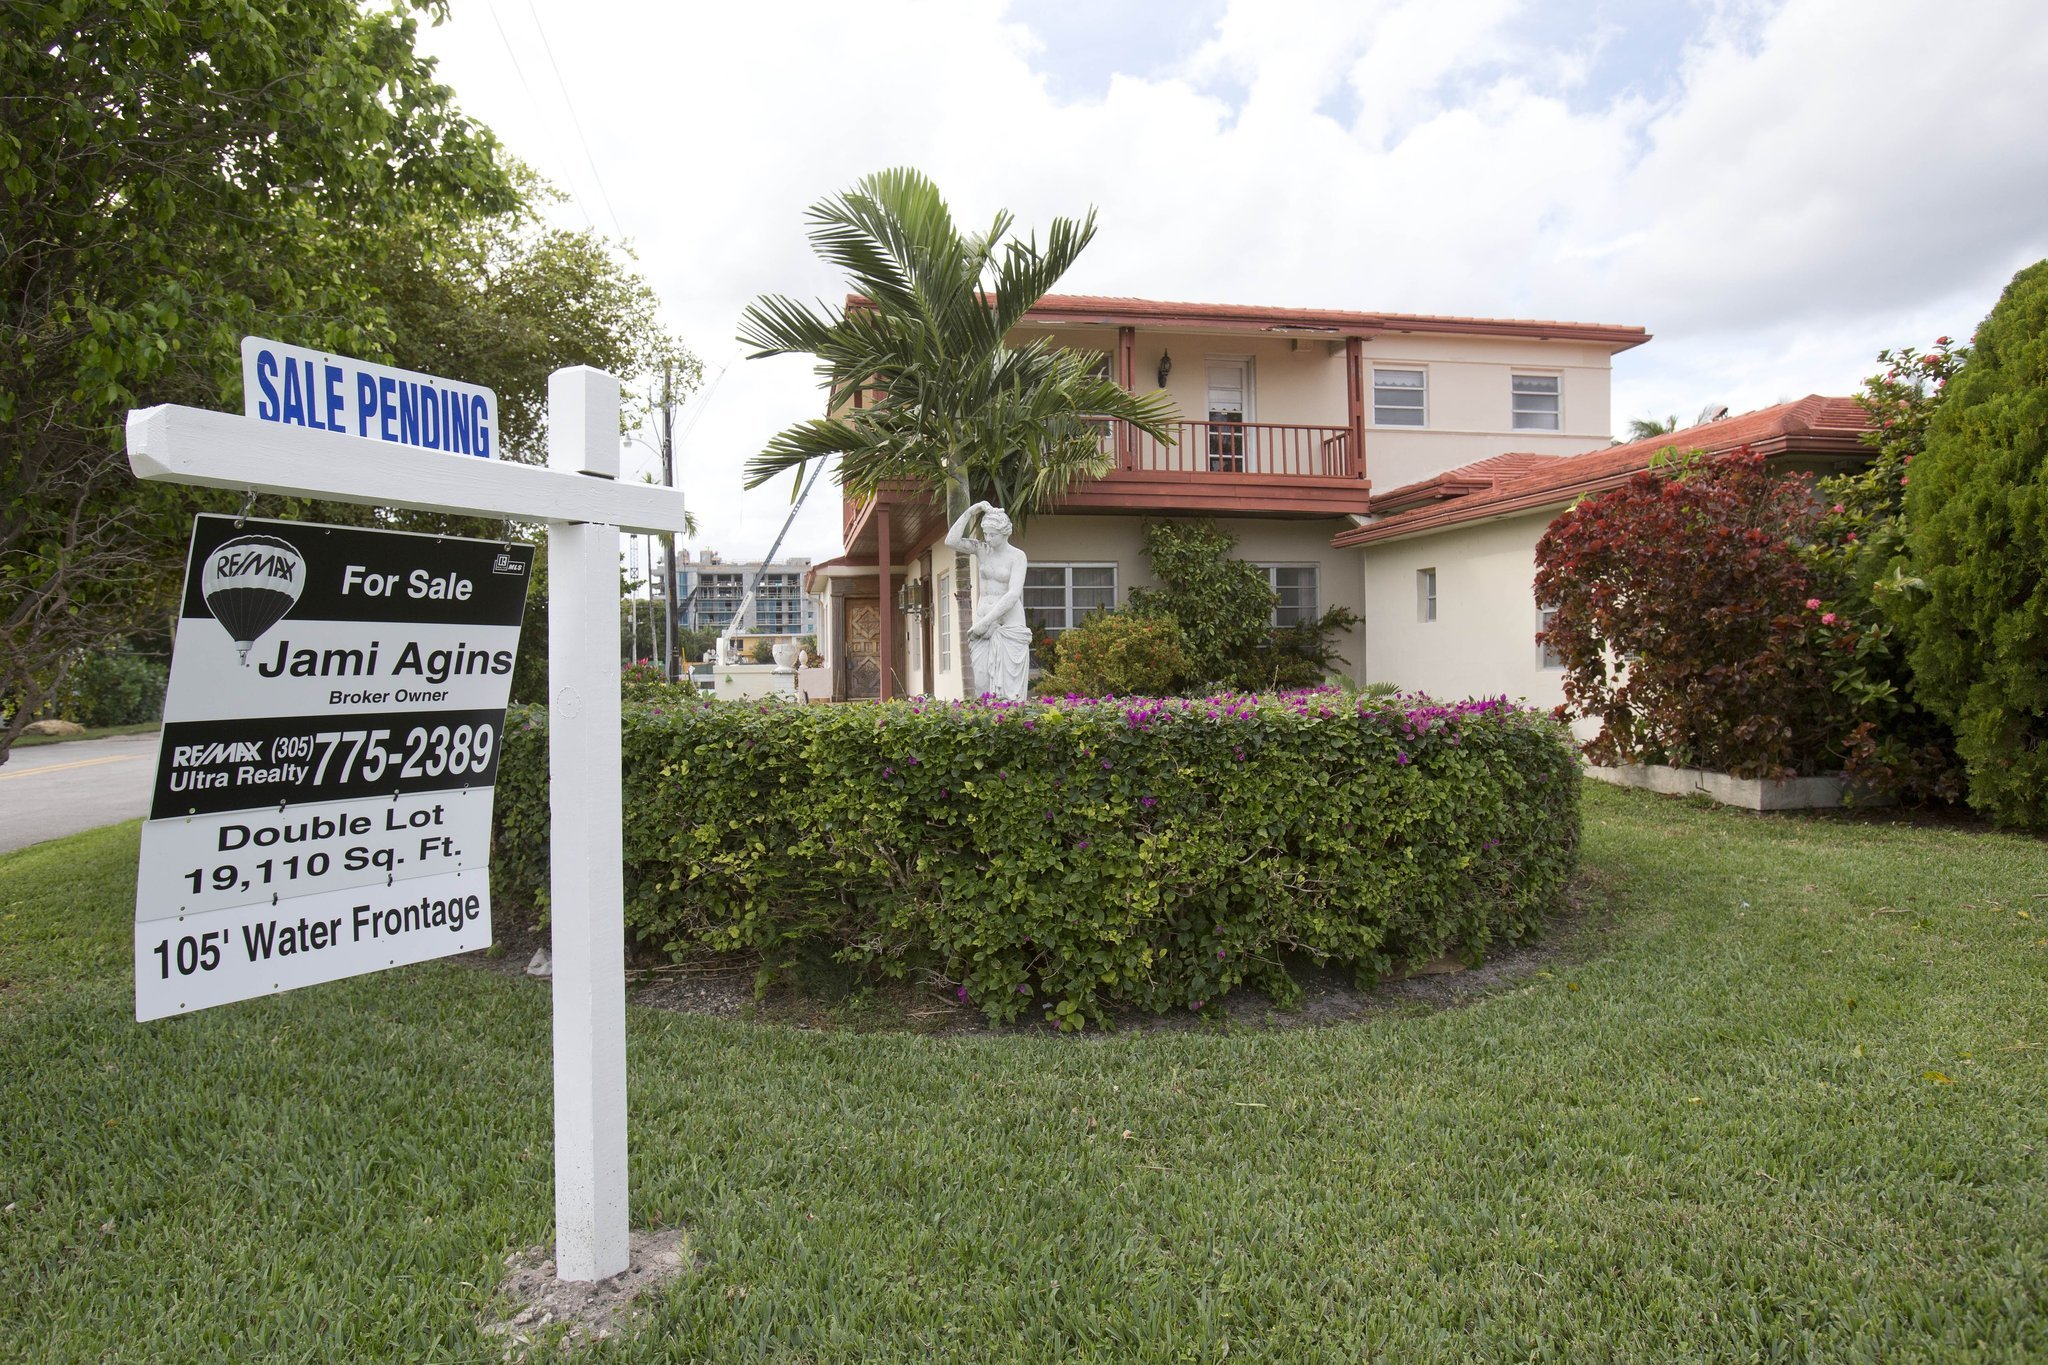 Pending home sales rise to 18-month high, signals housing rebound